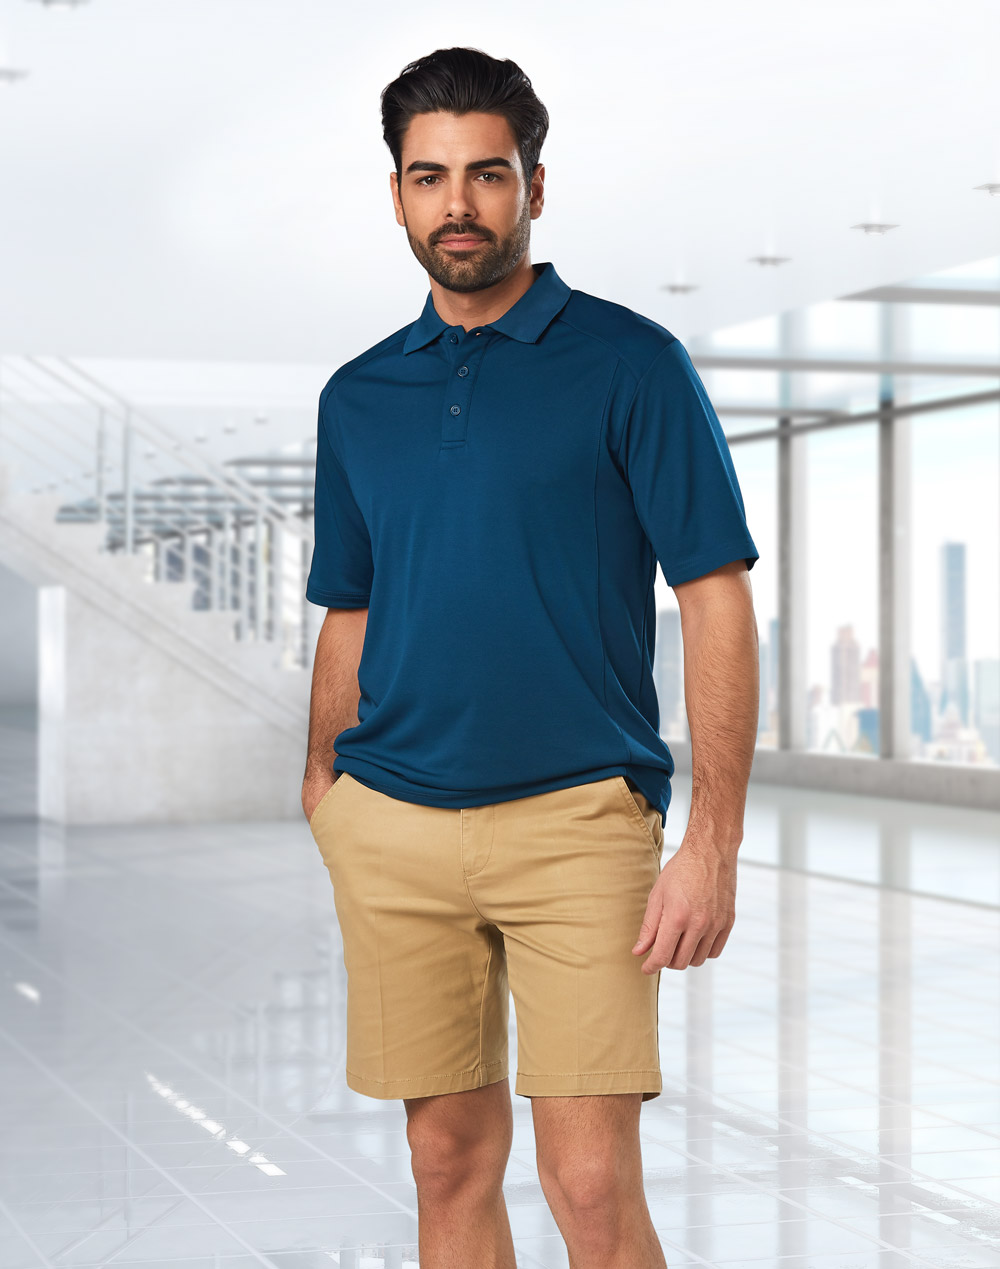 M9381 MENS STRETCH SLIMFIT BOSTON CHINO SHORTS